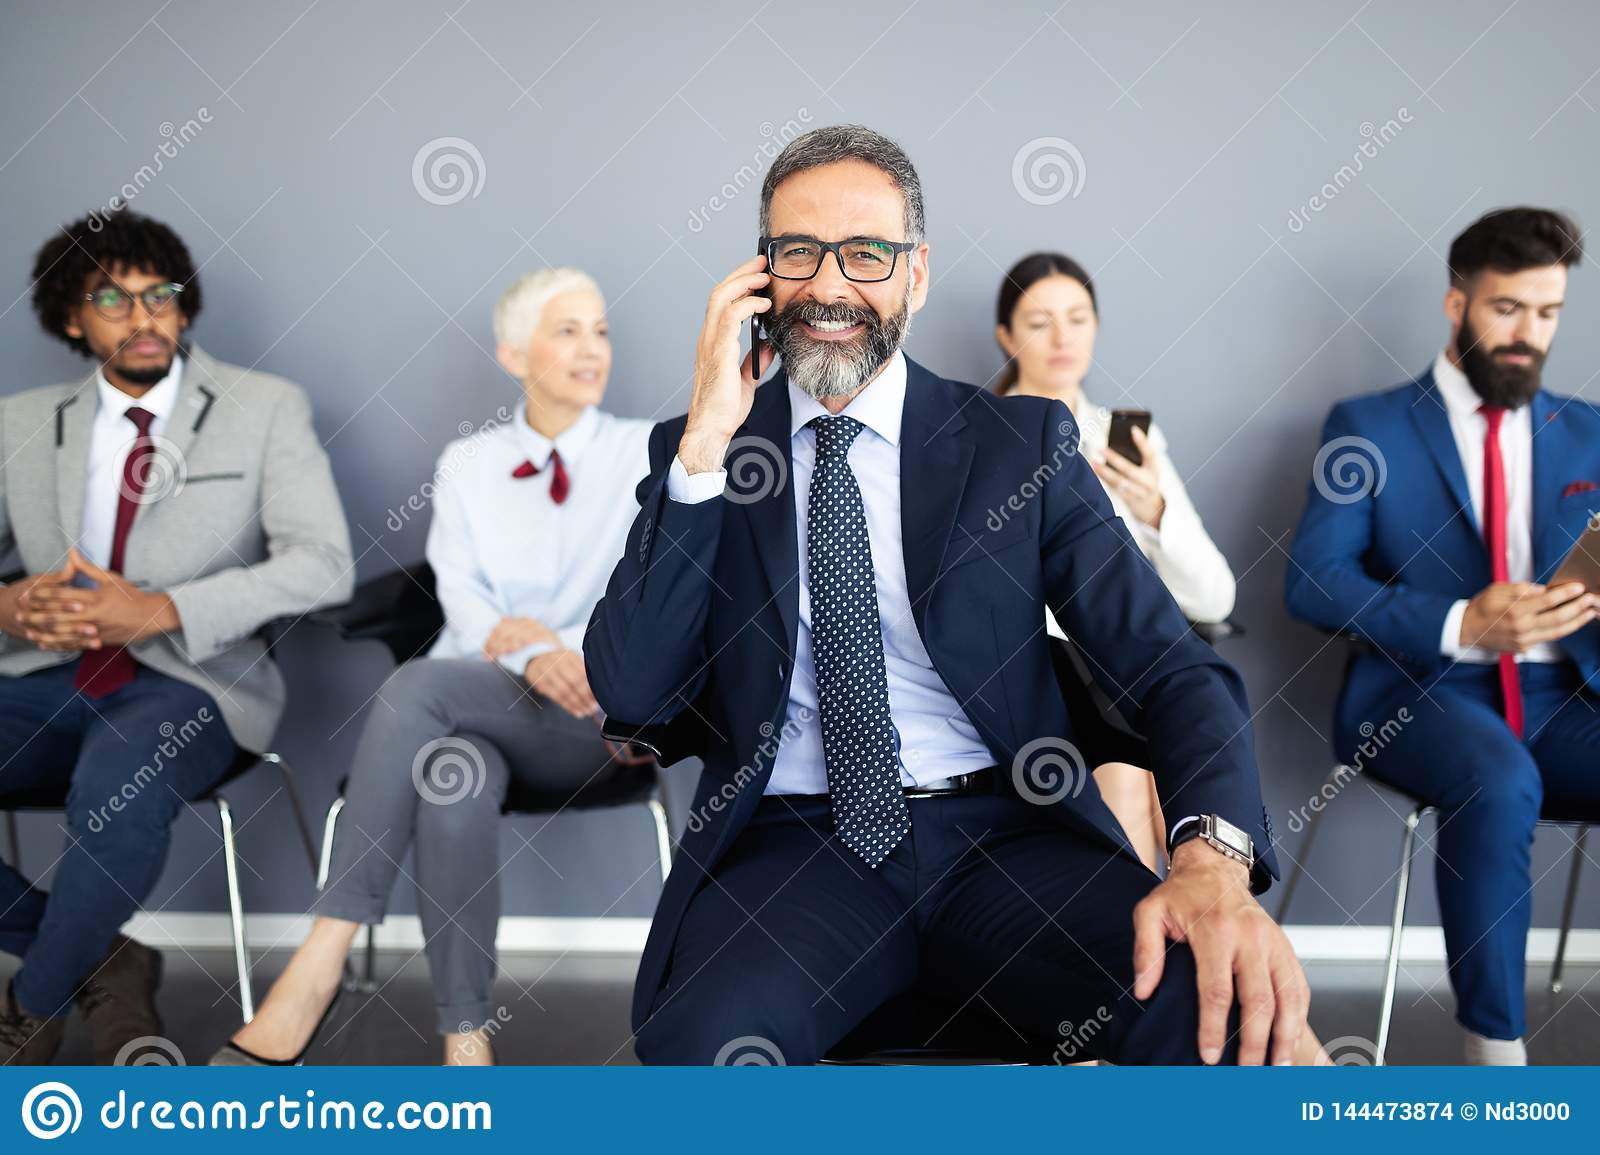 Business People Meeting Corporate Digital Device Connection Concept